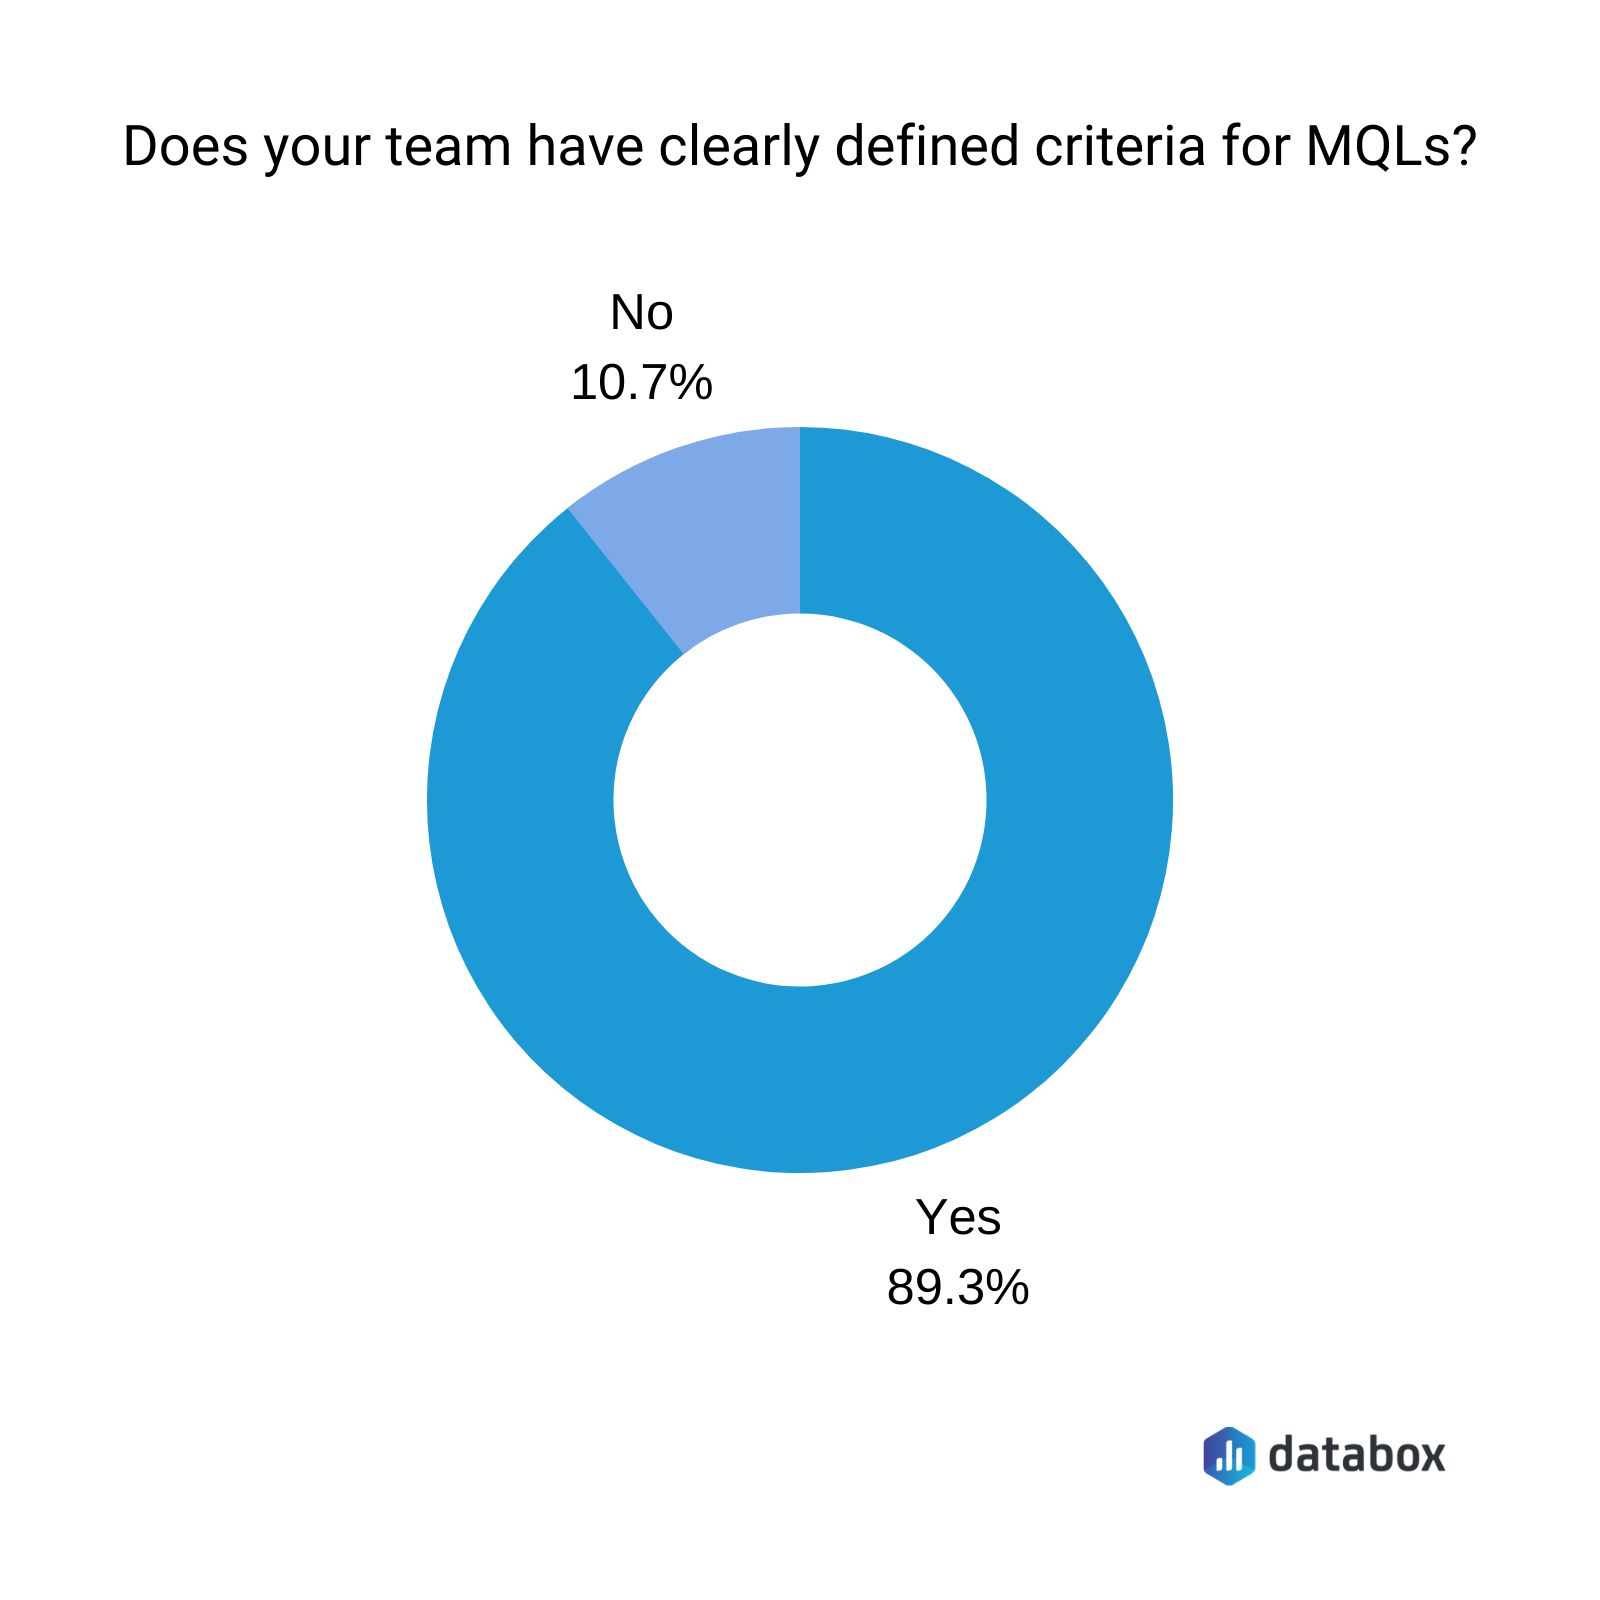 Does your team have clearly defined criteria for MQLs?